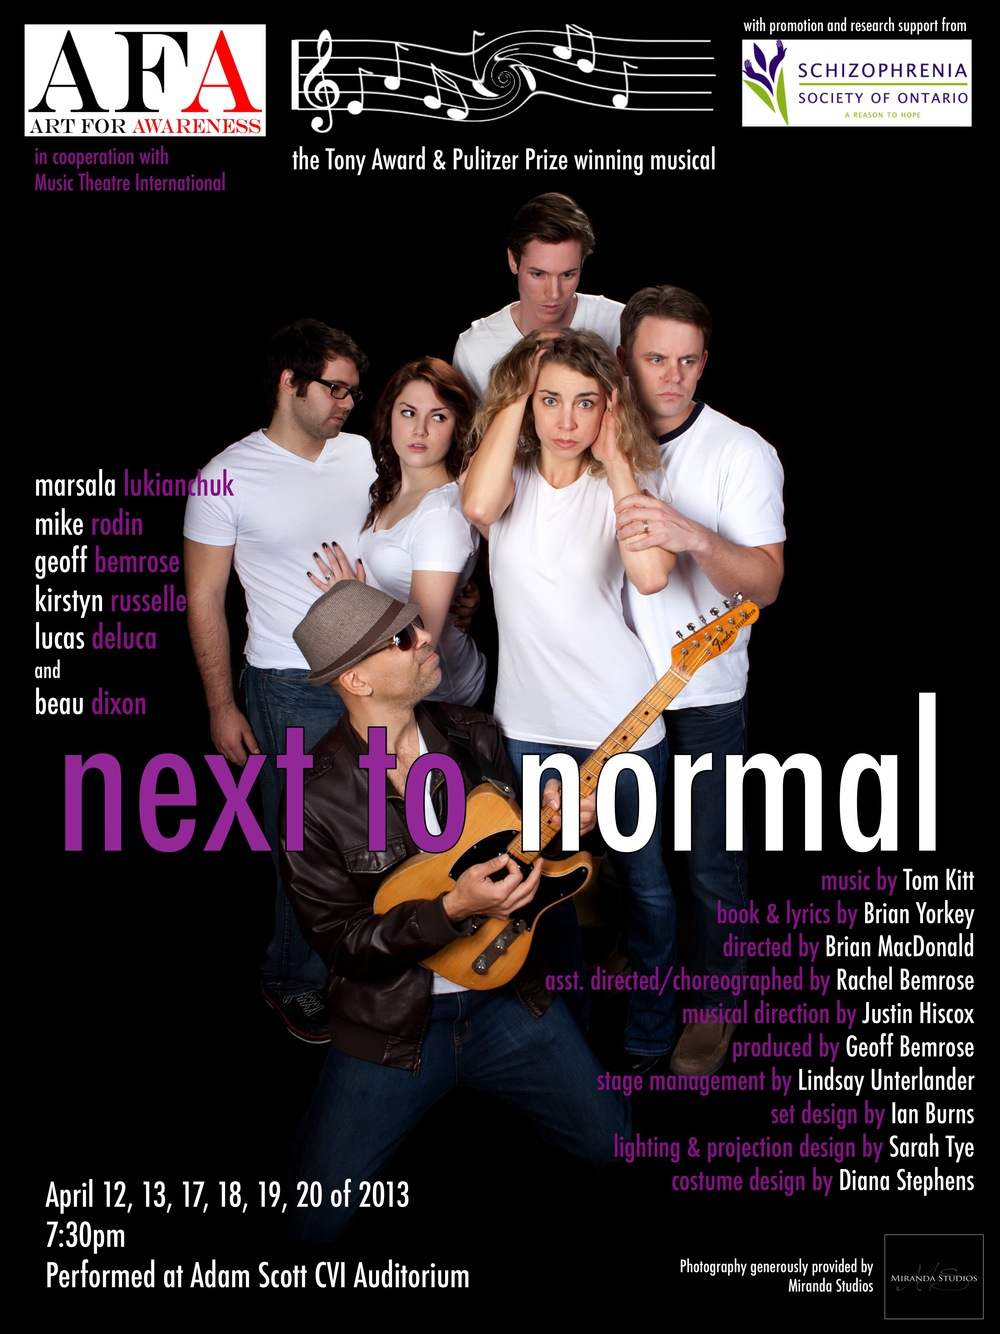 To view images and video, please visit our  Next to Normal gallery page